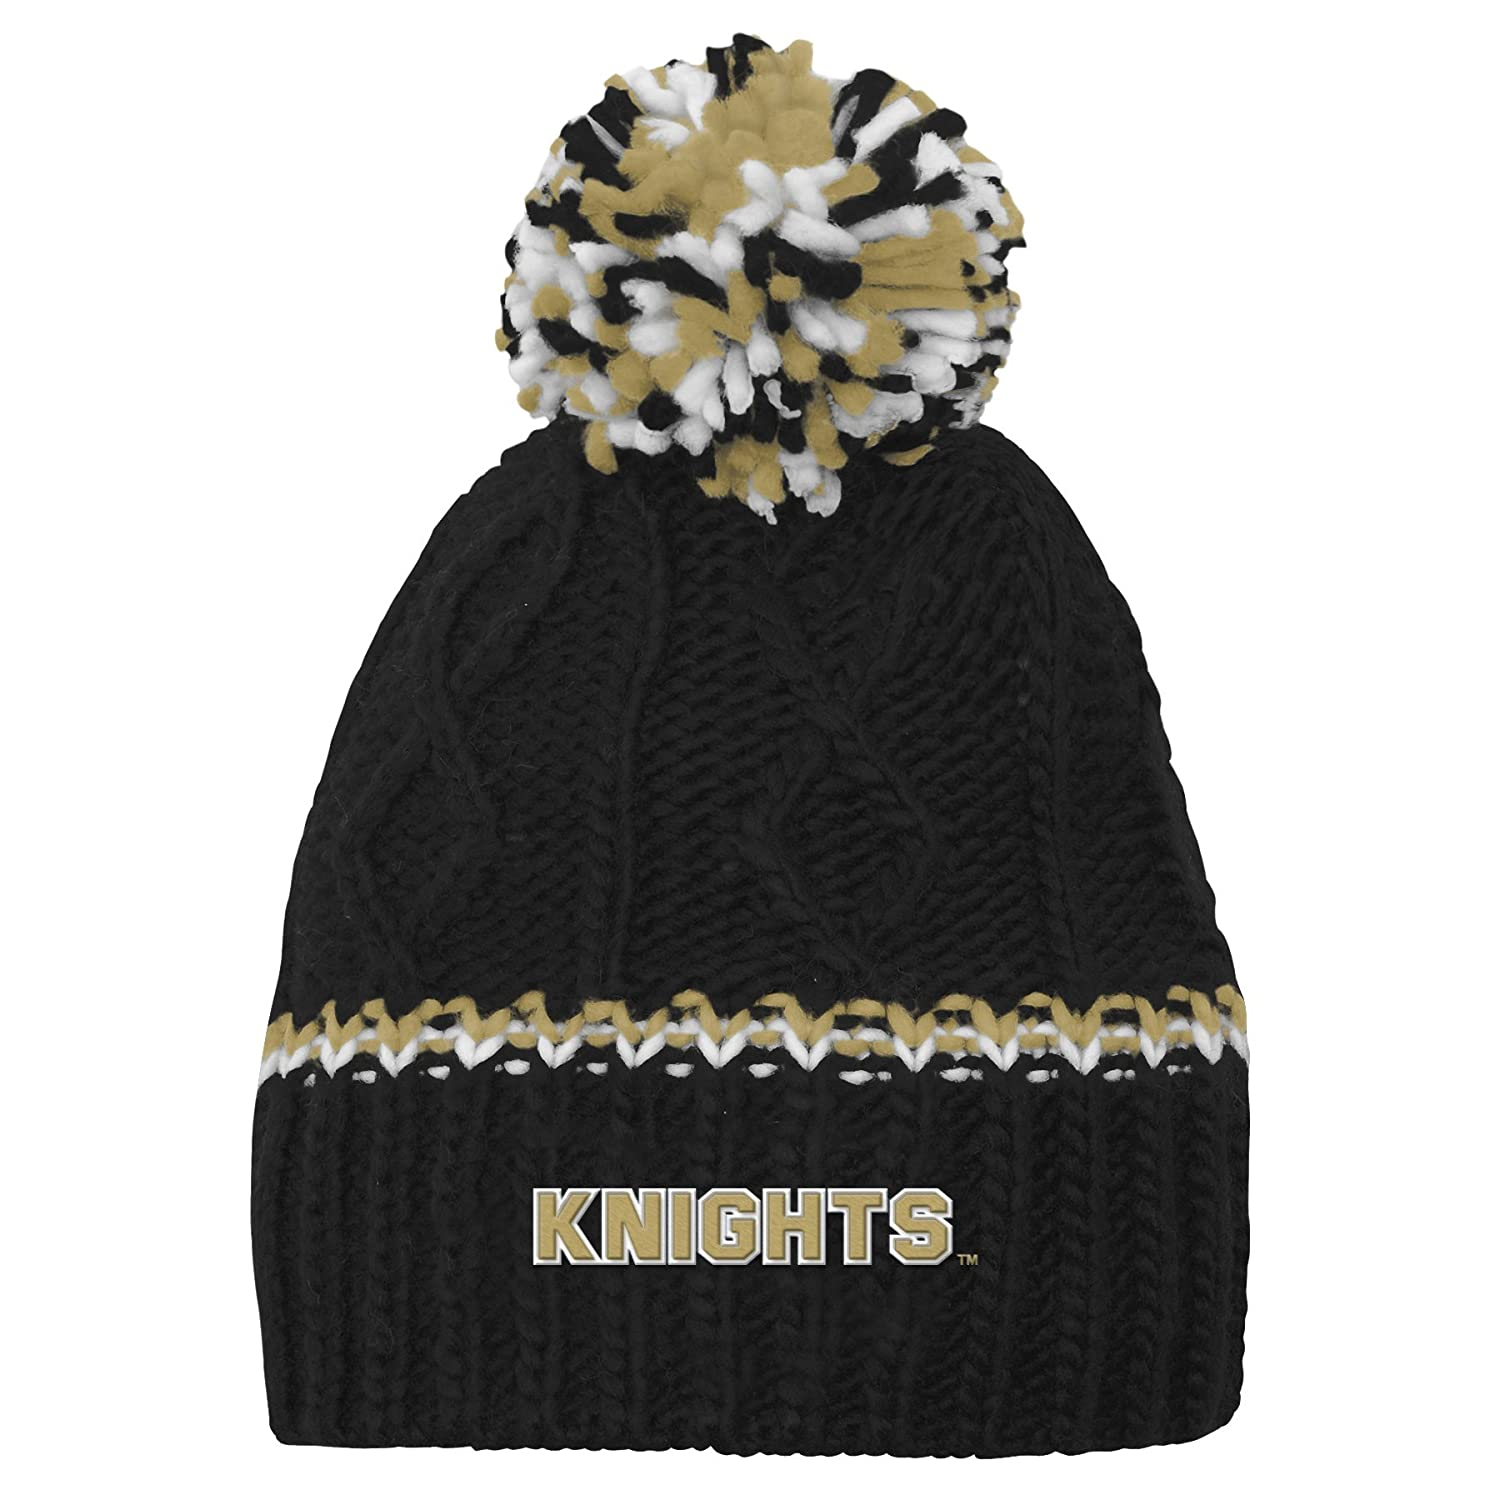 free shipping 1a5e5 b4641 Amazon.com   NCAA by Outerstuff NCAA Central Florida Golden Knights Youth  Girls Cable Knit Cuffless Hat w  Pom, Black, Youth One Size   Sports    Outdoors